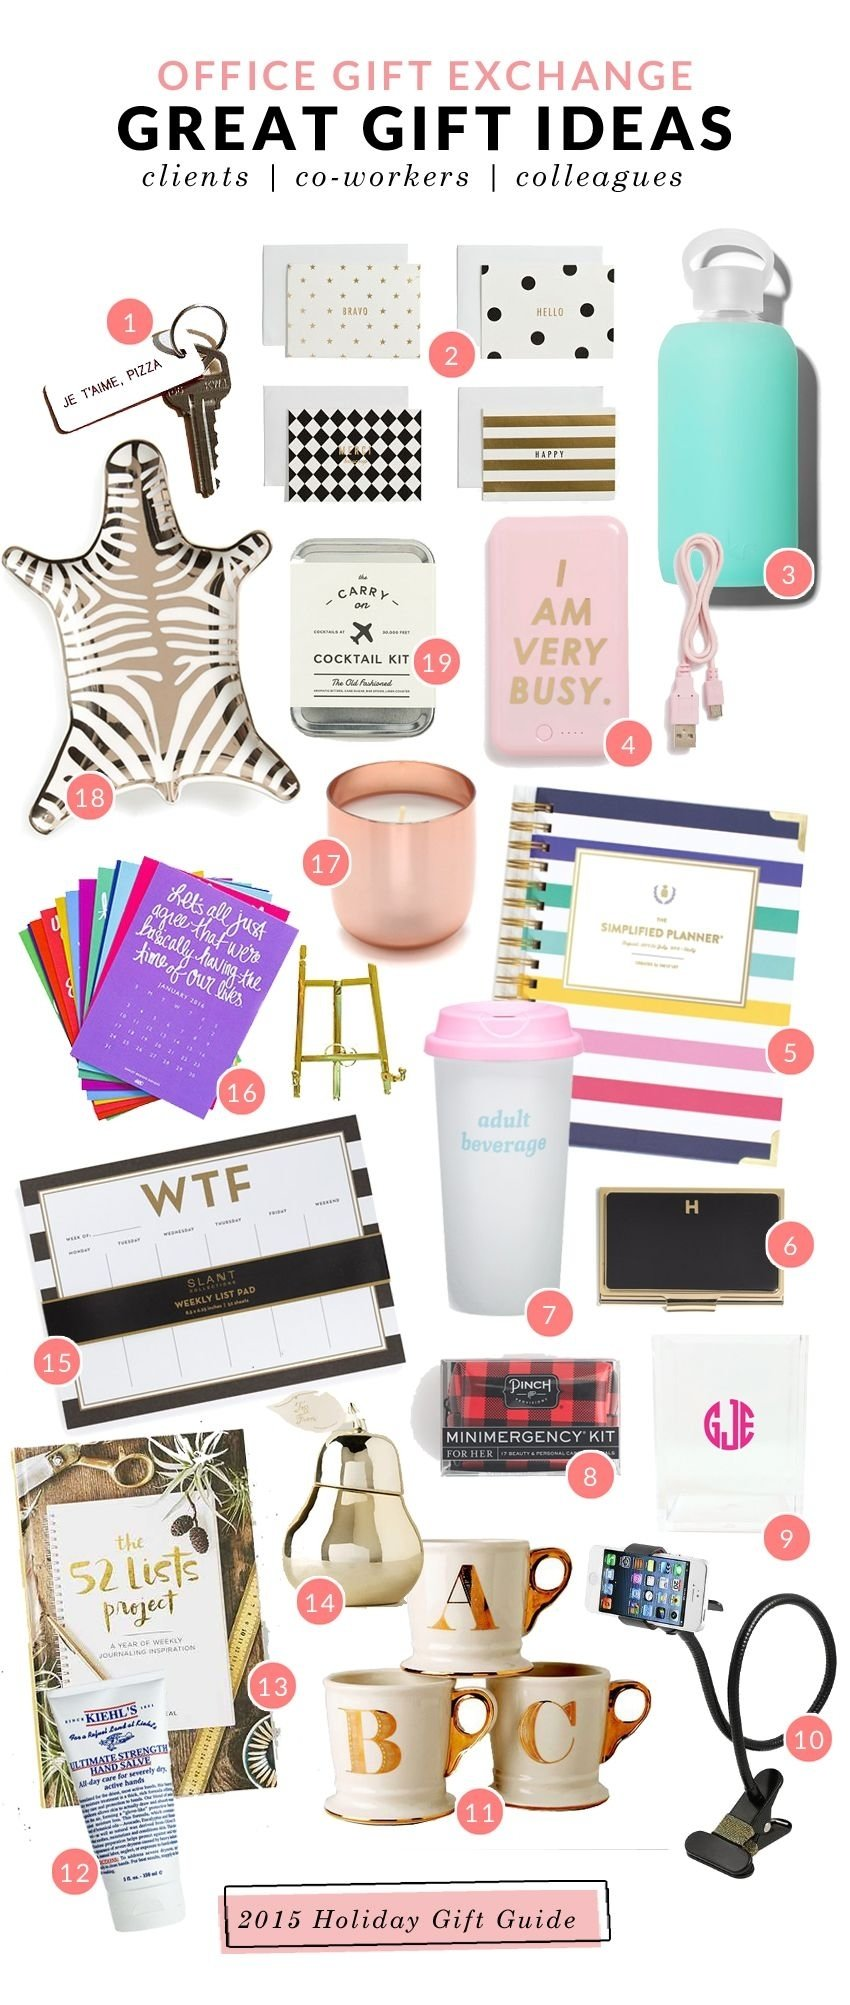 great gift ideas for co-workers, clients & colleagues (most of these